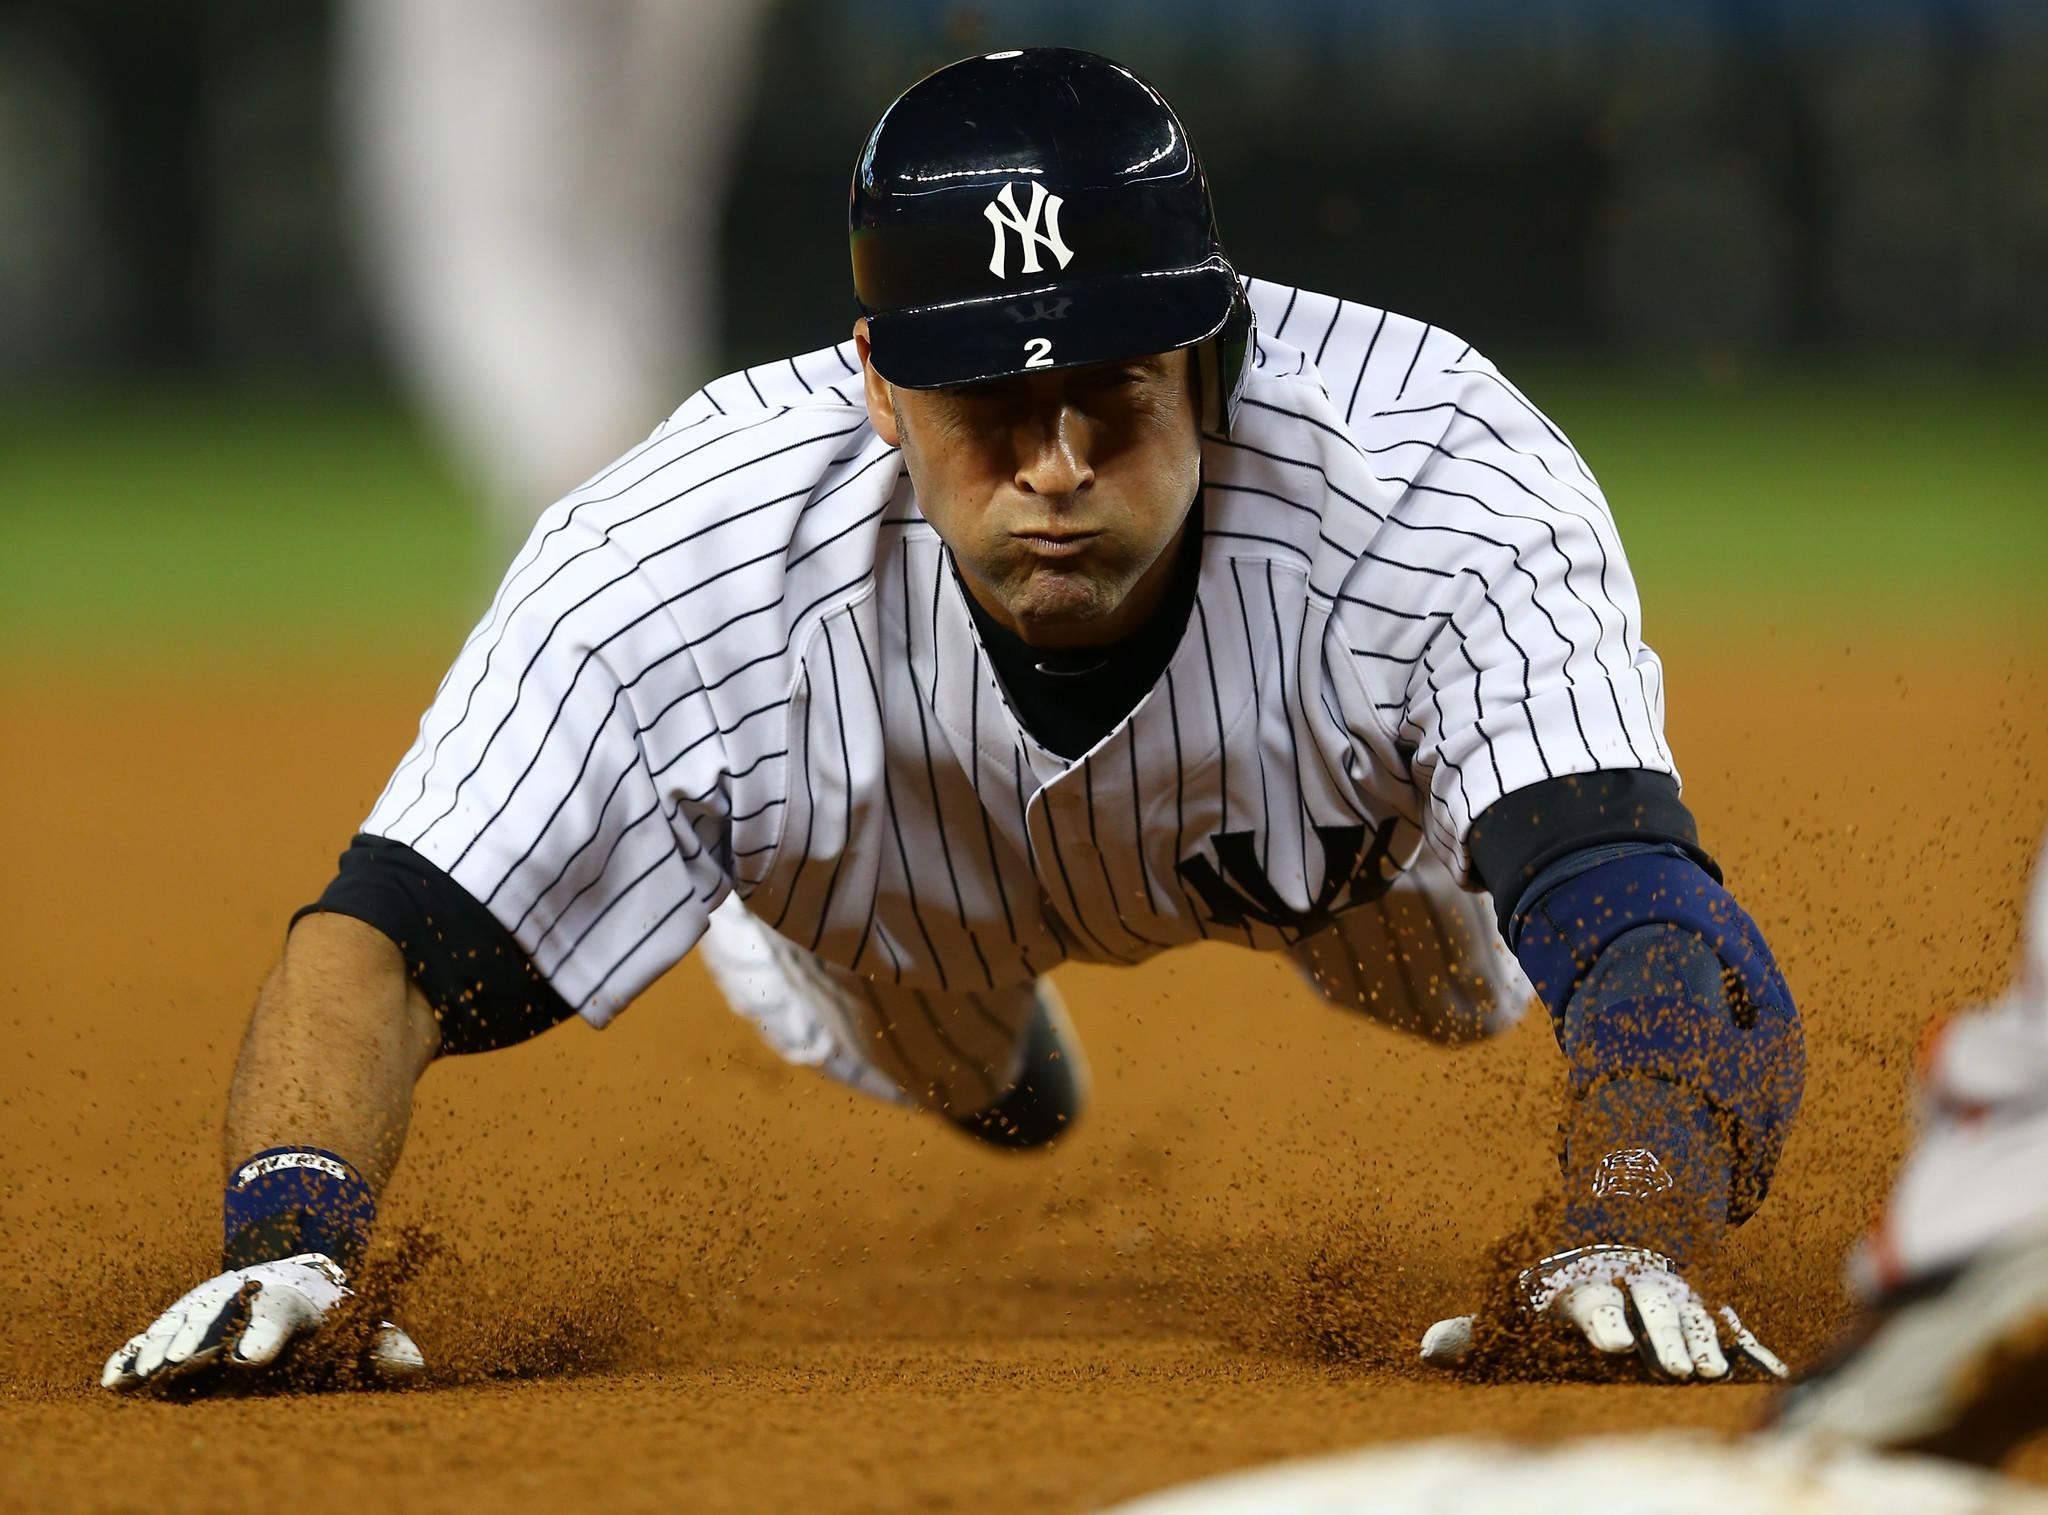 Fox increased its stake to 80% of the New York Yankees' YES regional sports network. Above, Derek Jeter of the New York Yankees slides into third base against the Baltimore Orioles in 2012.